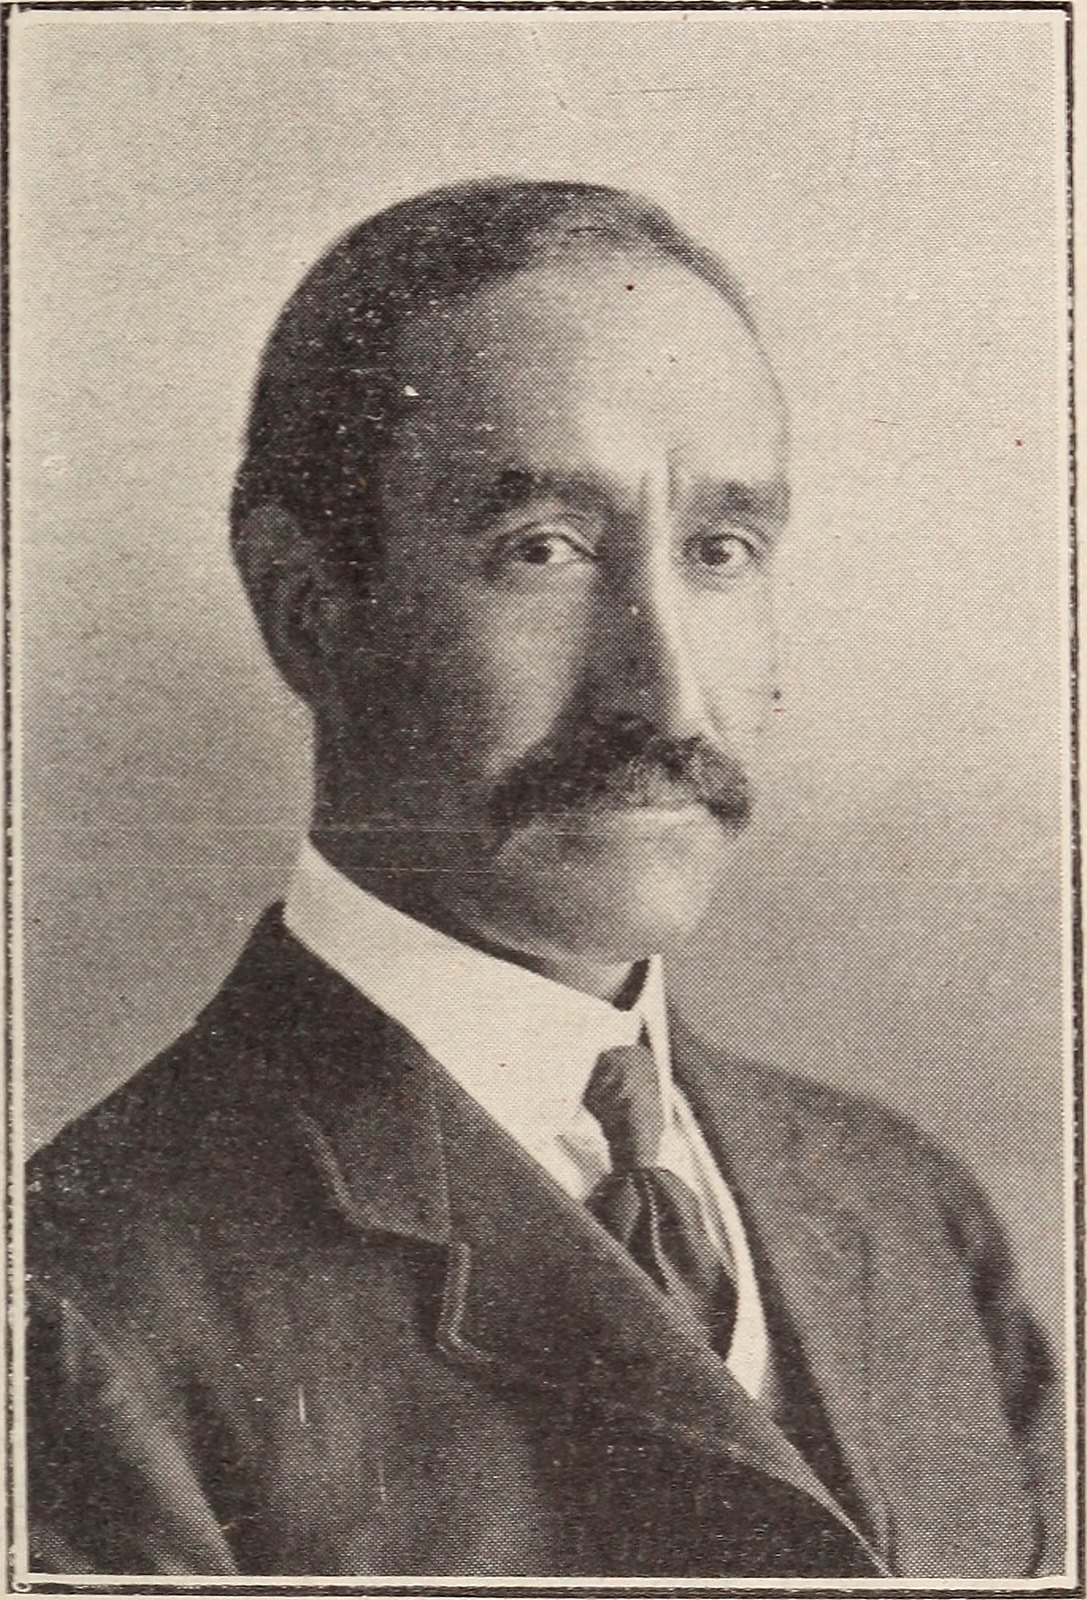 Dr Fabián Garciá (pictured above) of New Mexico State University was likely the man responsible for breeding the chile peppers that landed in Pueblo, Colorado in the early 1900s.